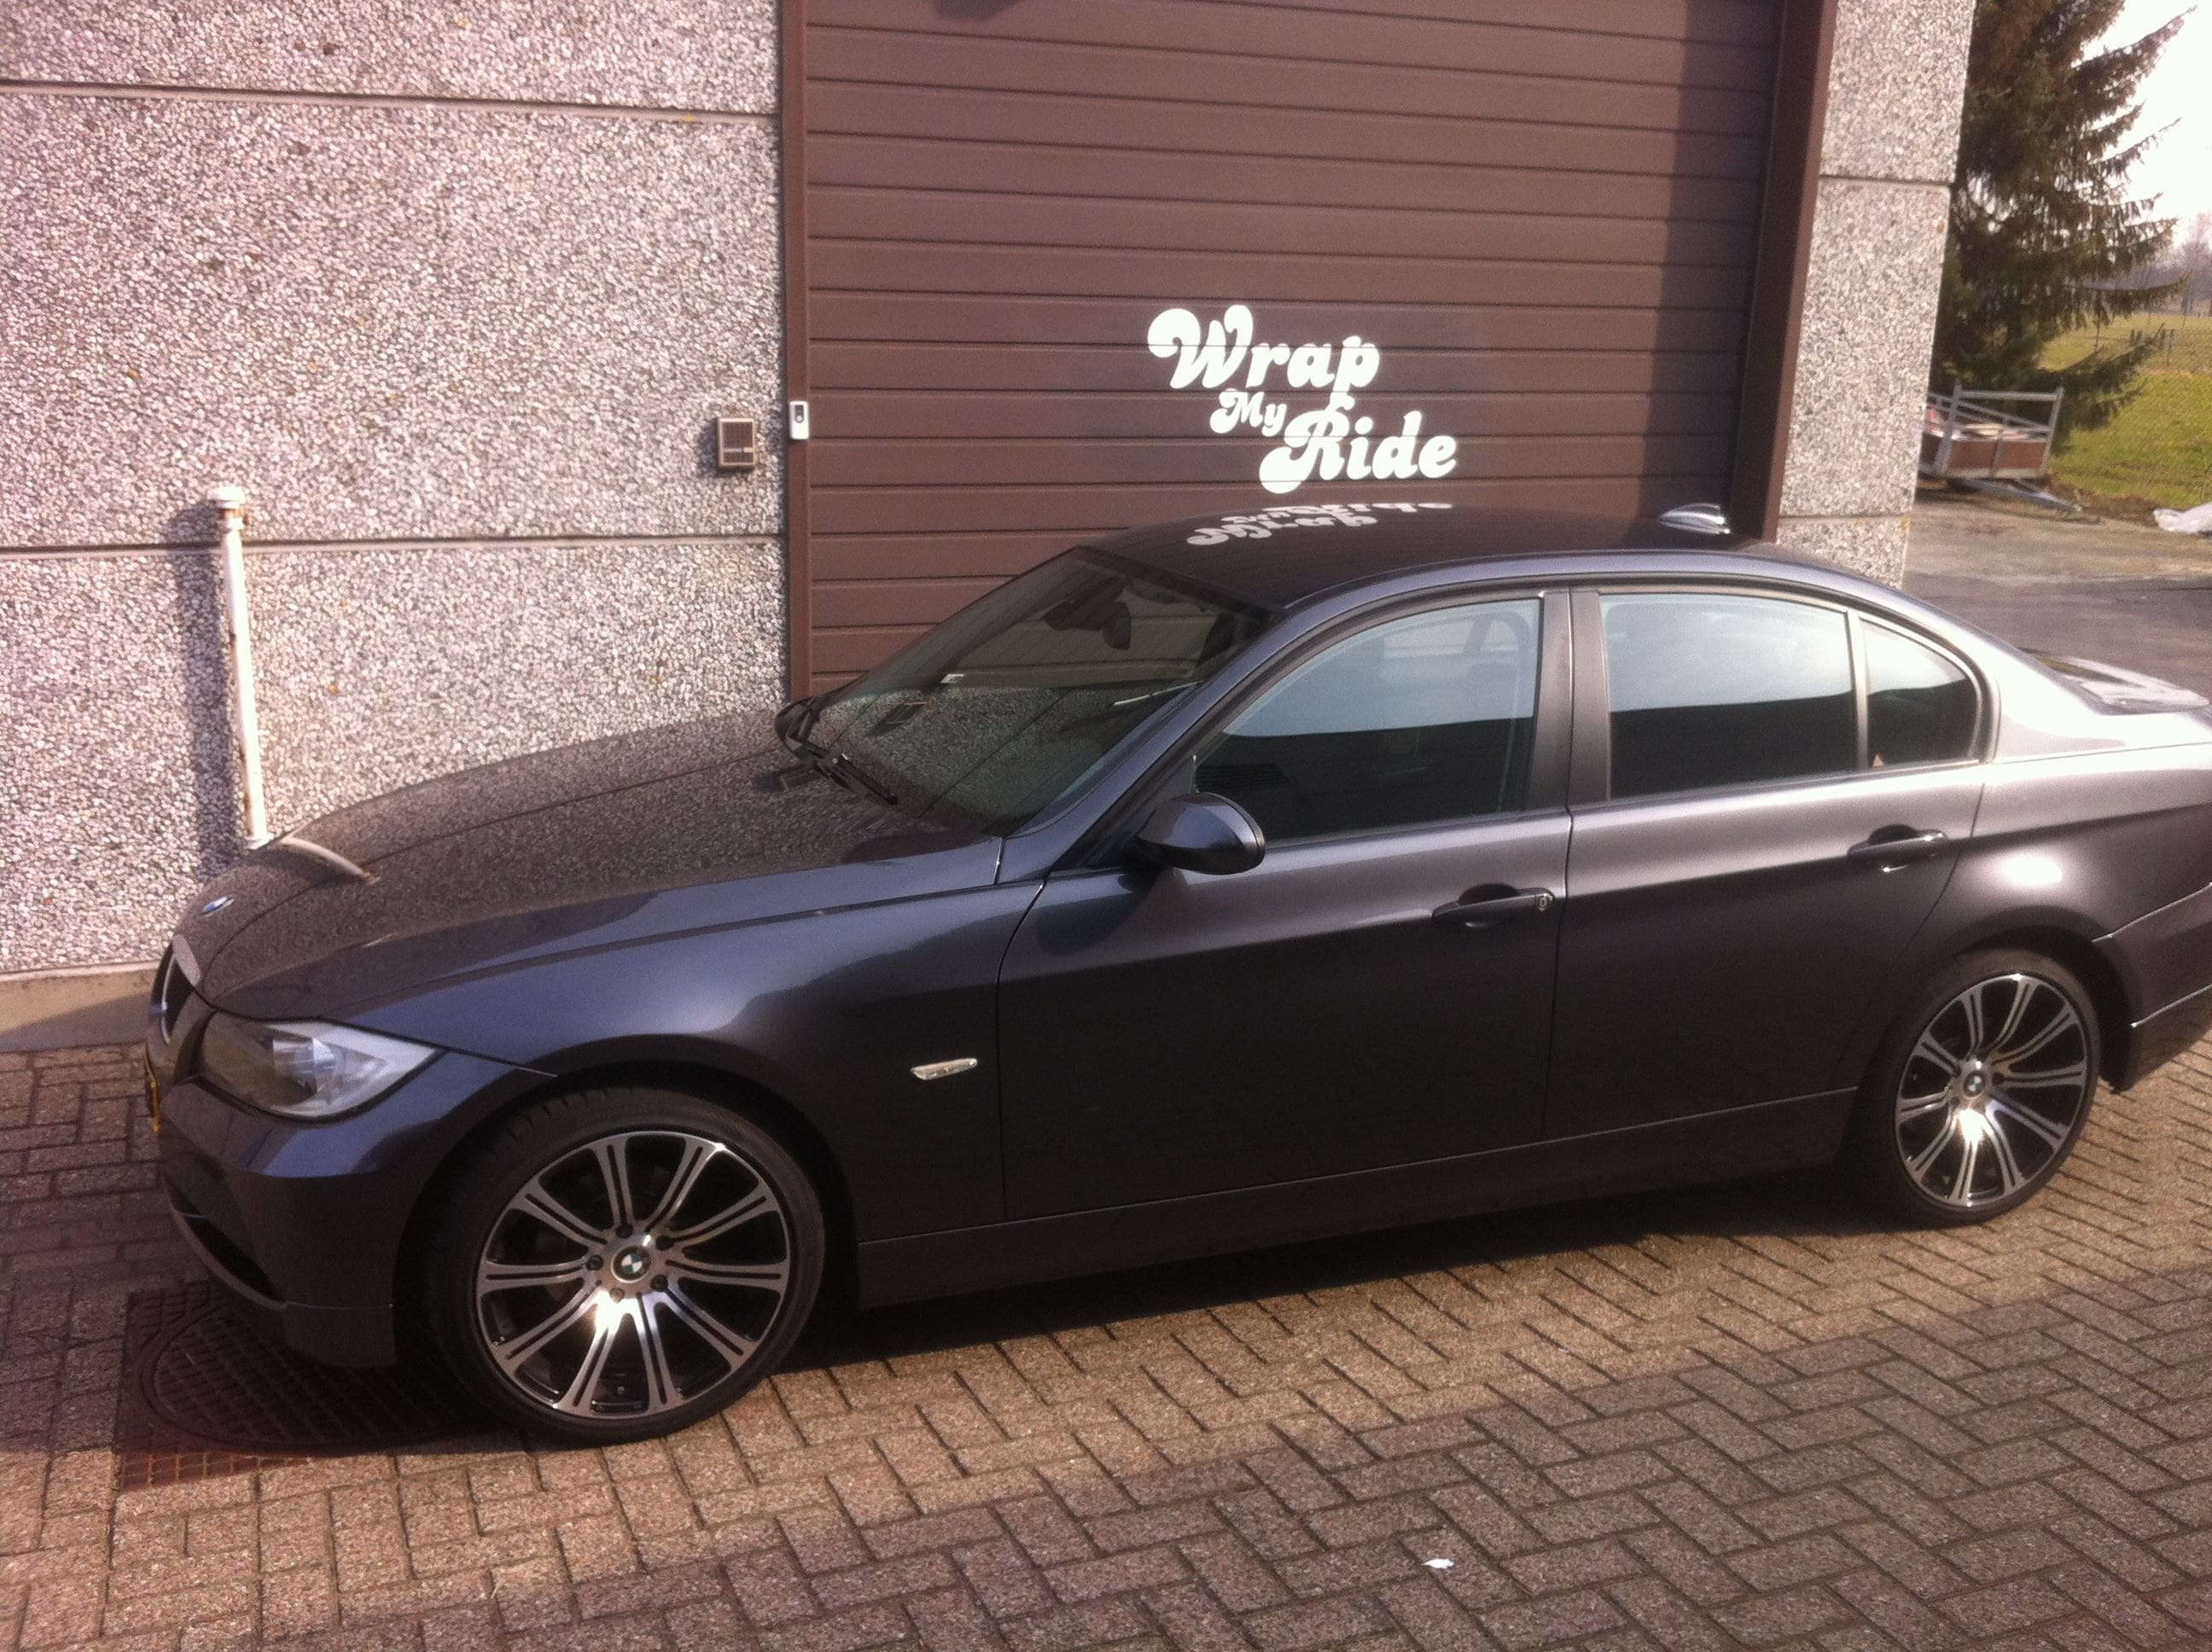 BMW E90 met Gunpowder Wrap, Carwrapping door Wrapmyride.nu Foto-nr:5369, ©2021